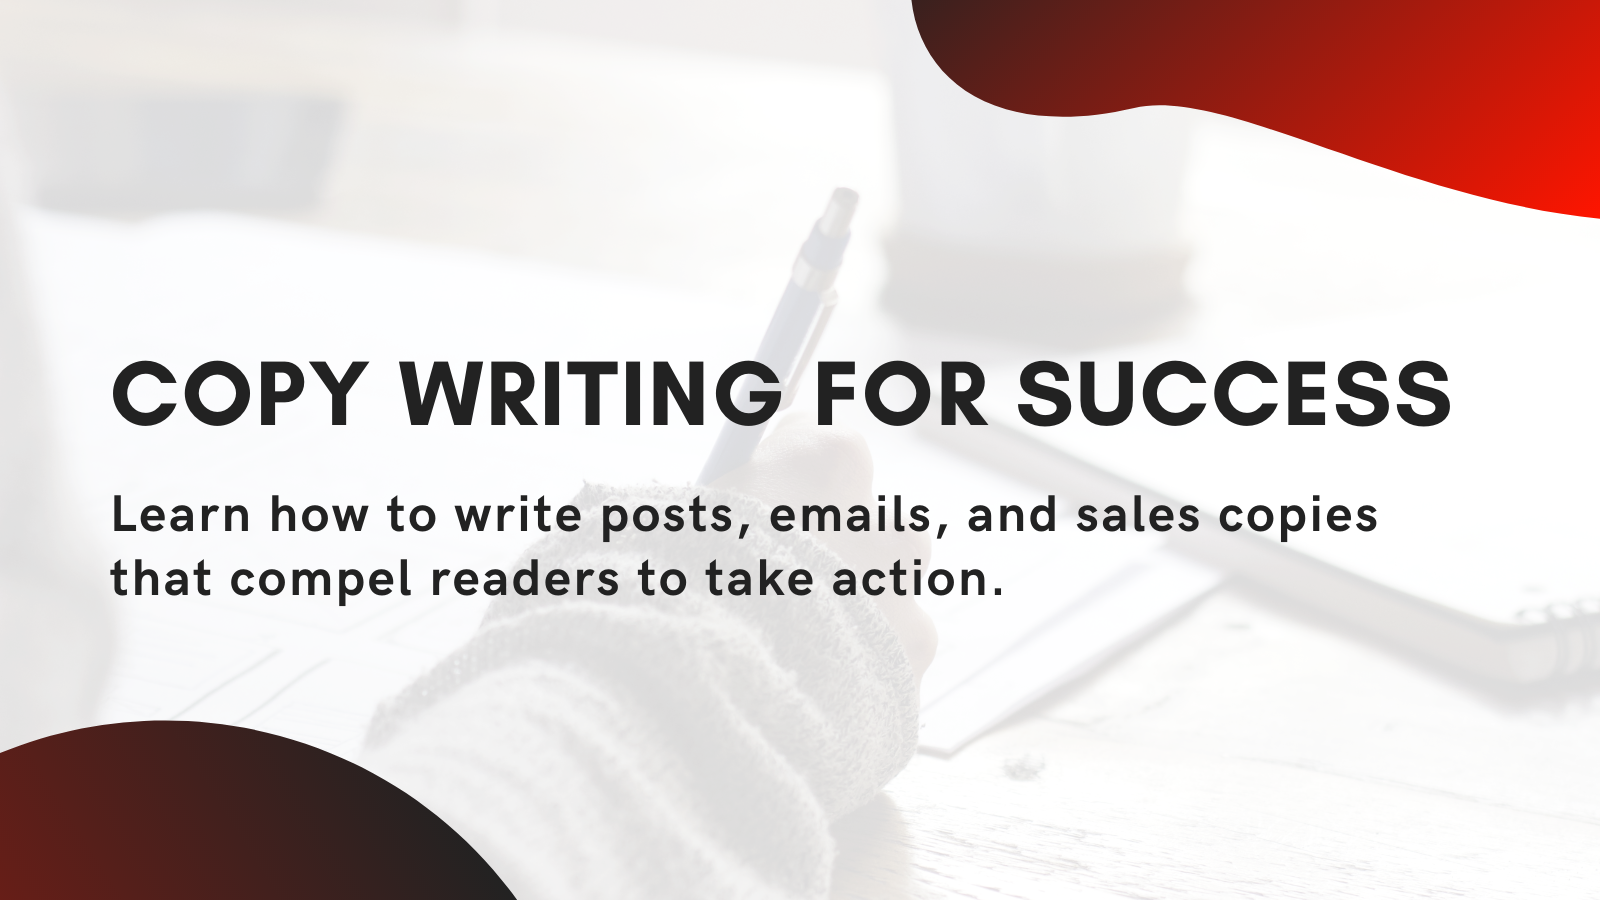 Copywriting for success (coming soon!)